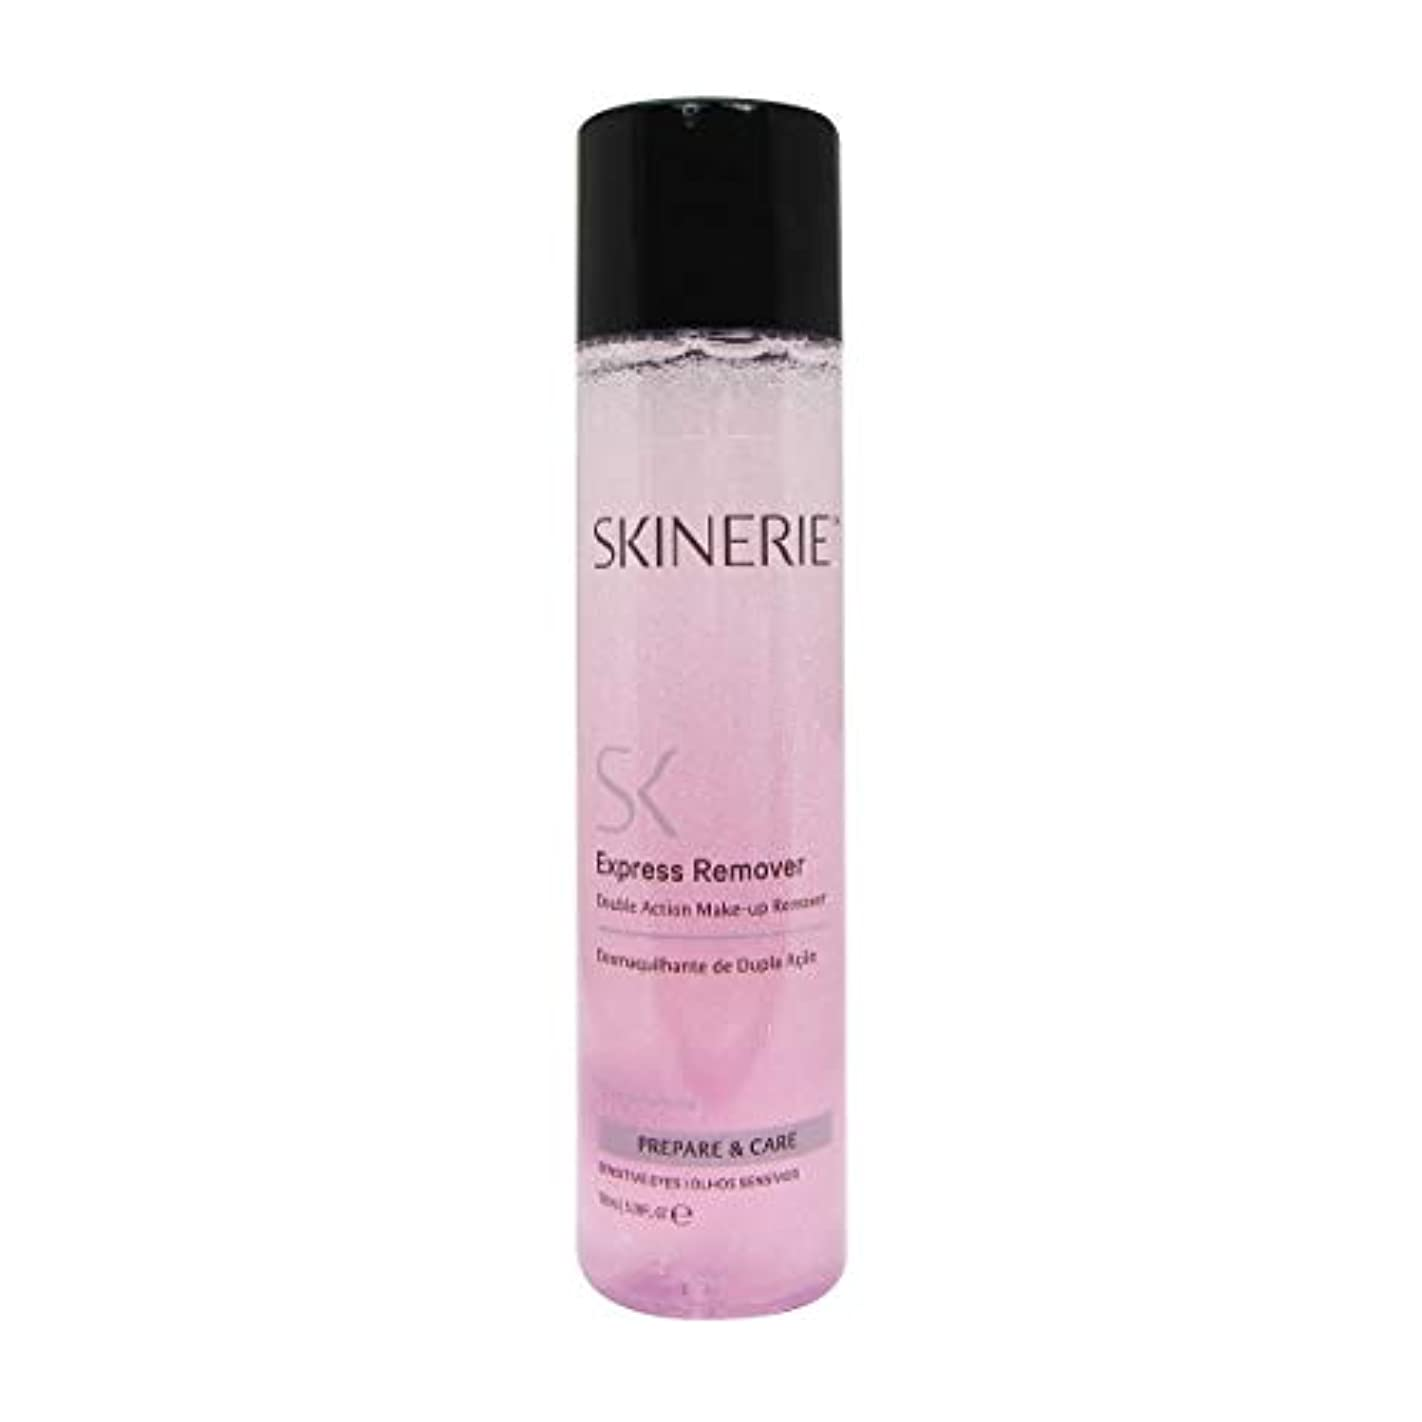 良さ周術期銃Skinerie Prepare And Care Express Remover Biphasic Cleanser 150ml [並行輸入品]